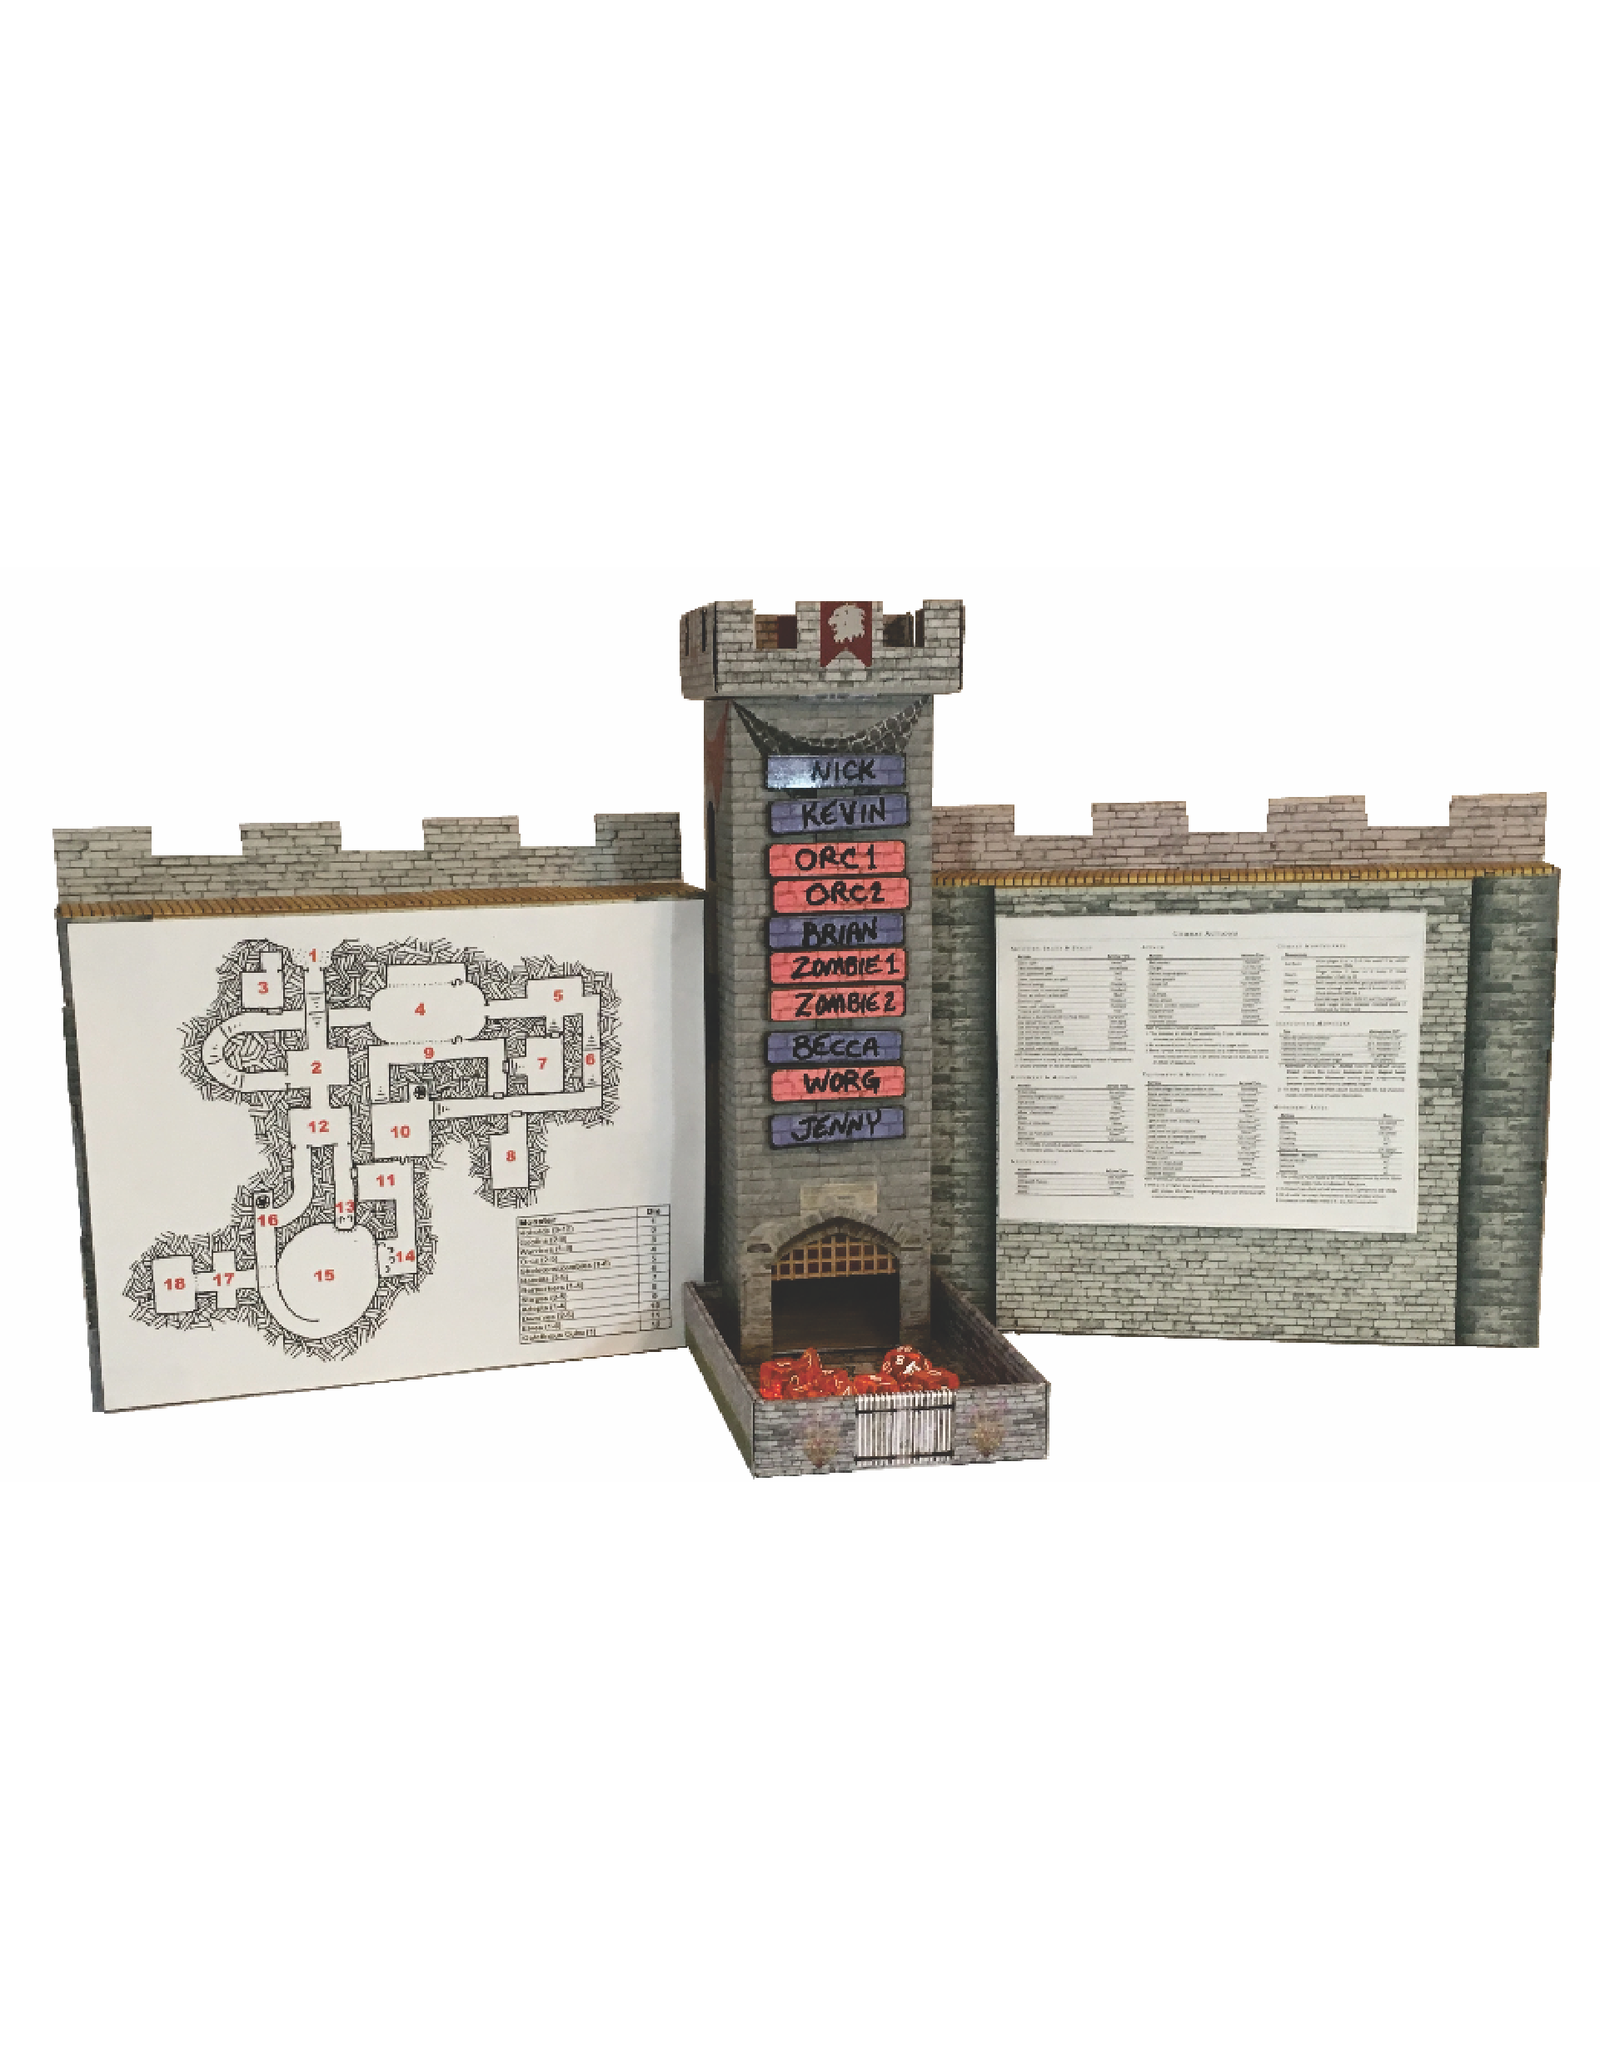 Castle Keep Dice Tower with Initiative Turn Tracker